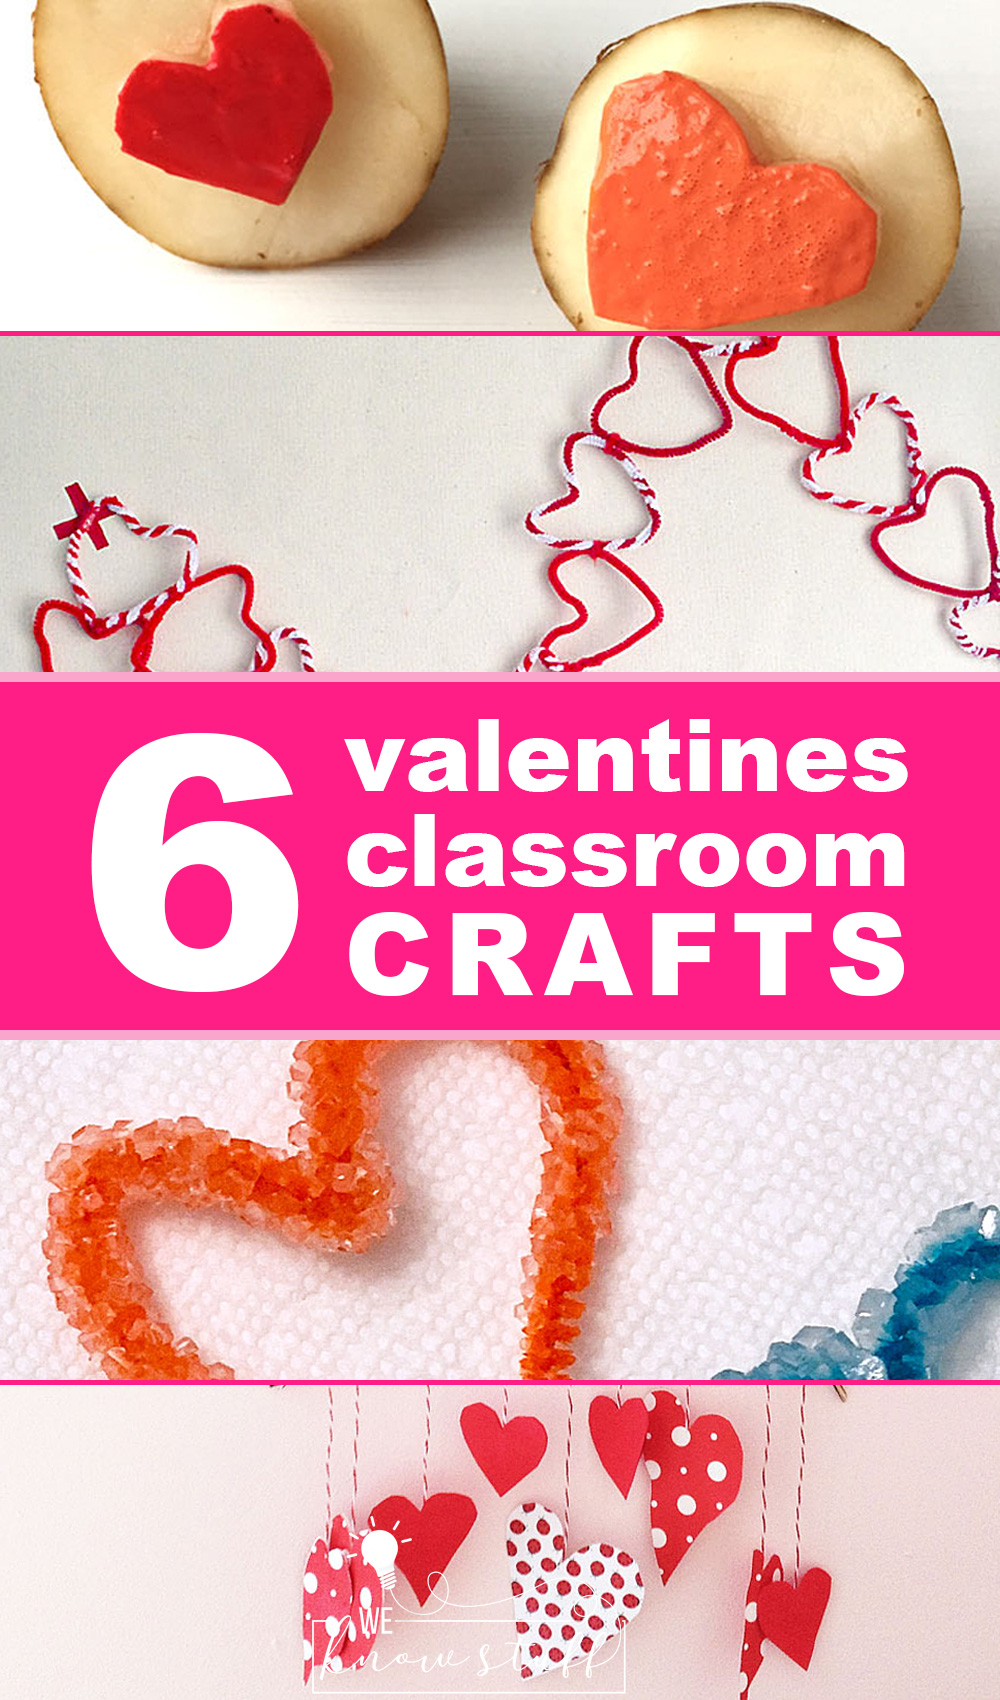 6 Classroom Crafts to Valentine\'s Day #valentinesday #classroomcrafts #valentinescrafts